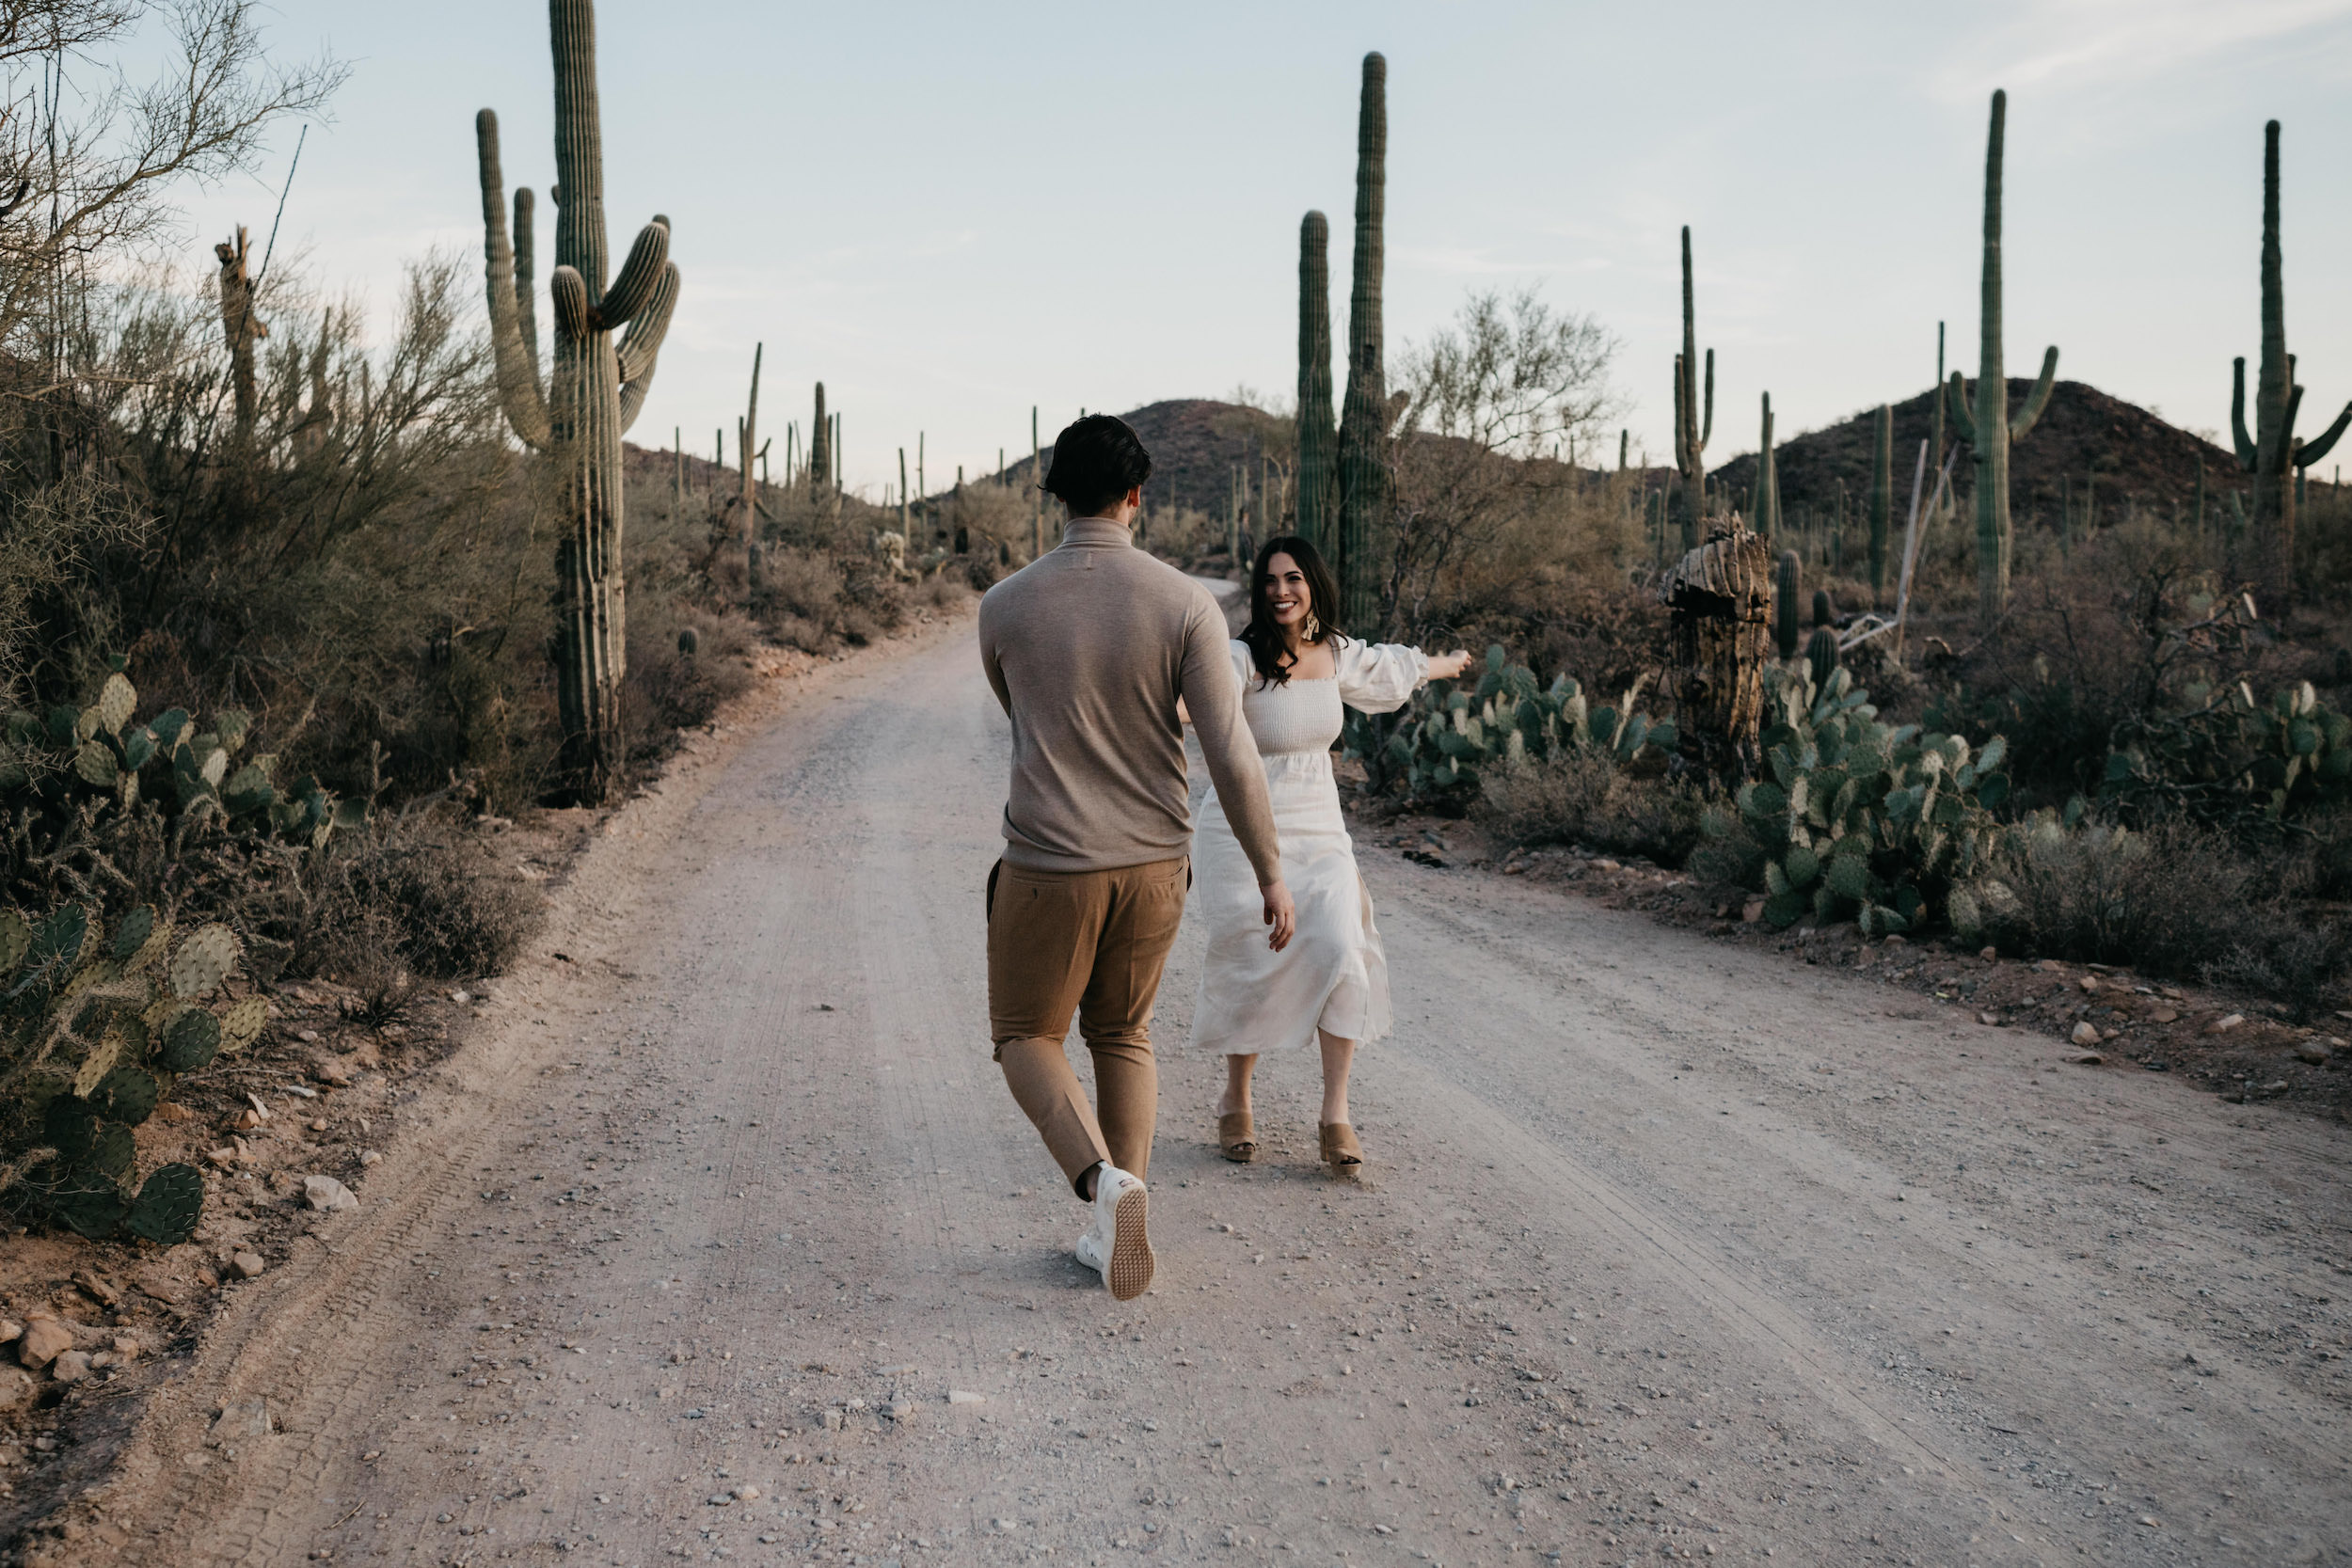 Couple dancing and running in the desert, image by Fatima Elreda Photo